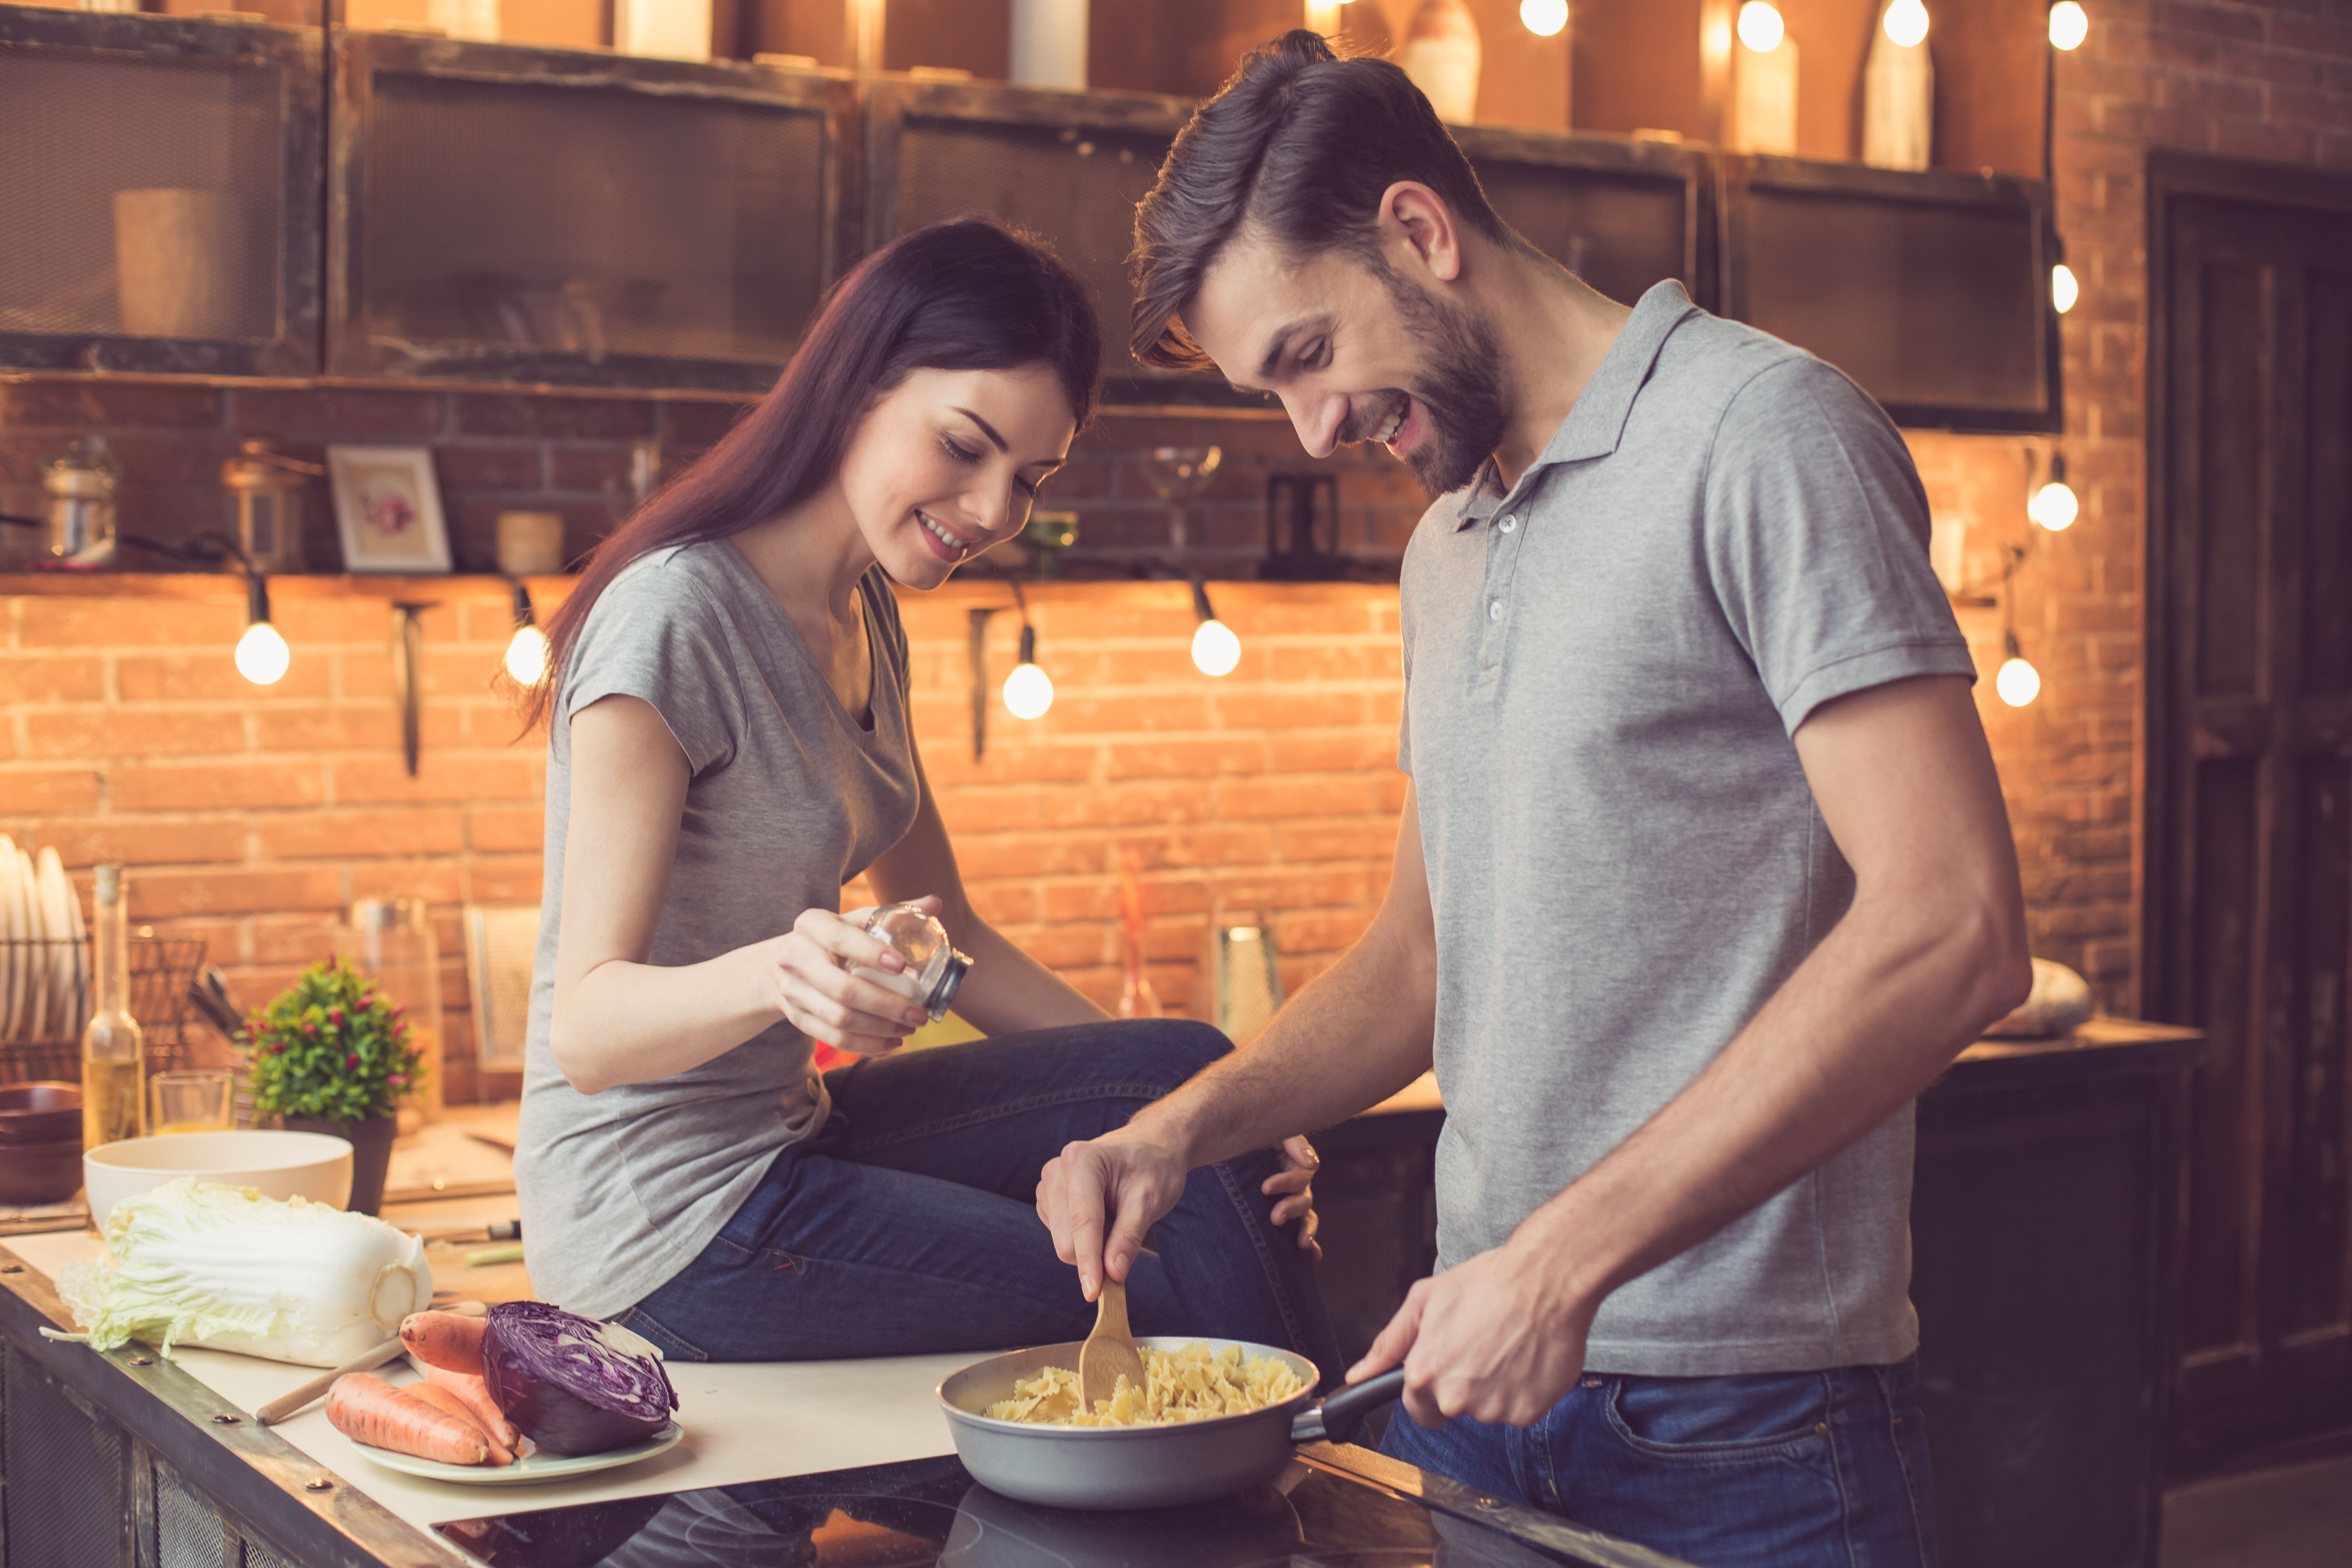 A couple cooking and talking in the kitchen. | Source: Shutterstock